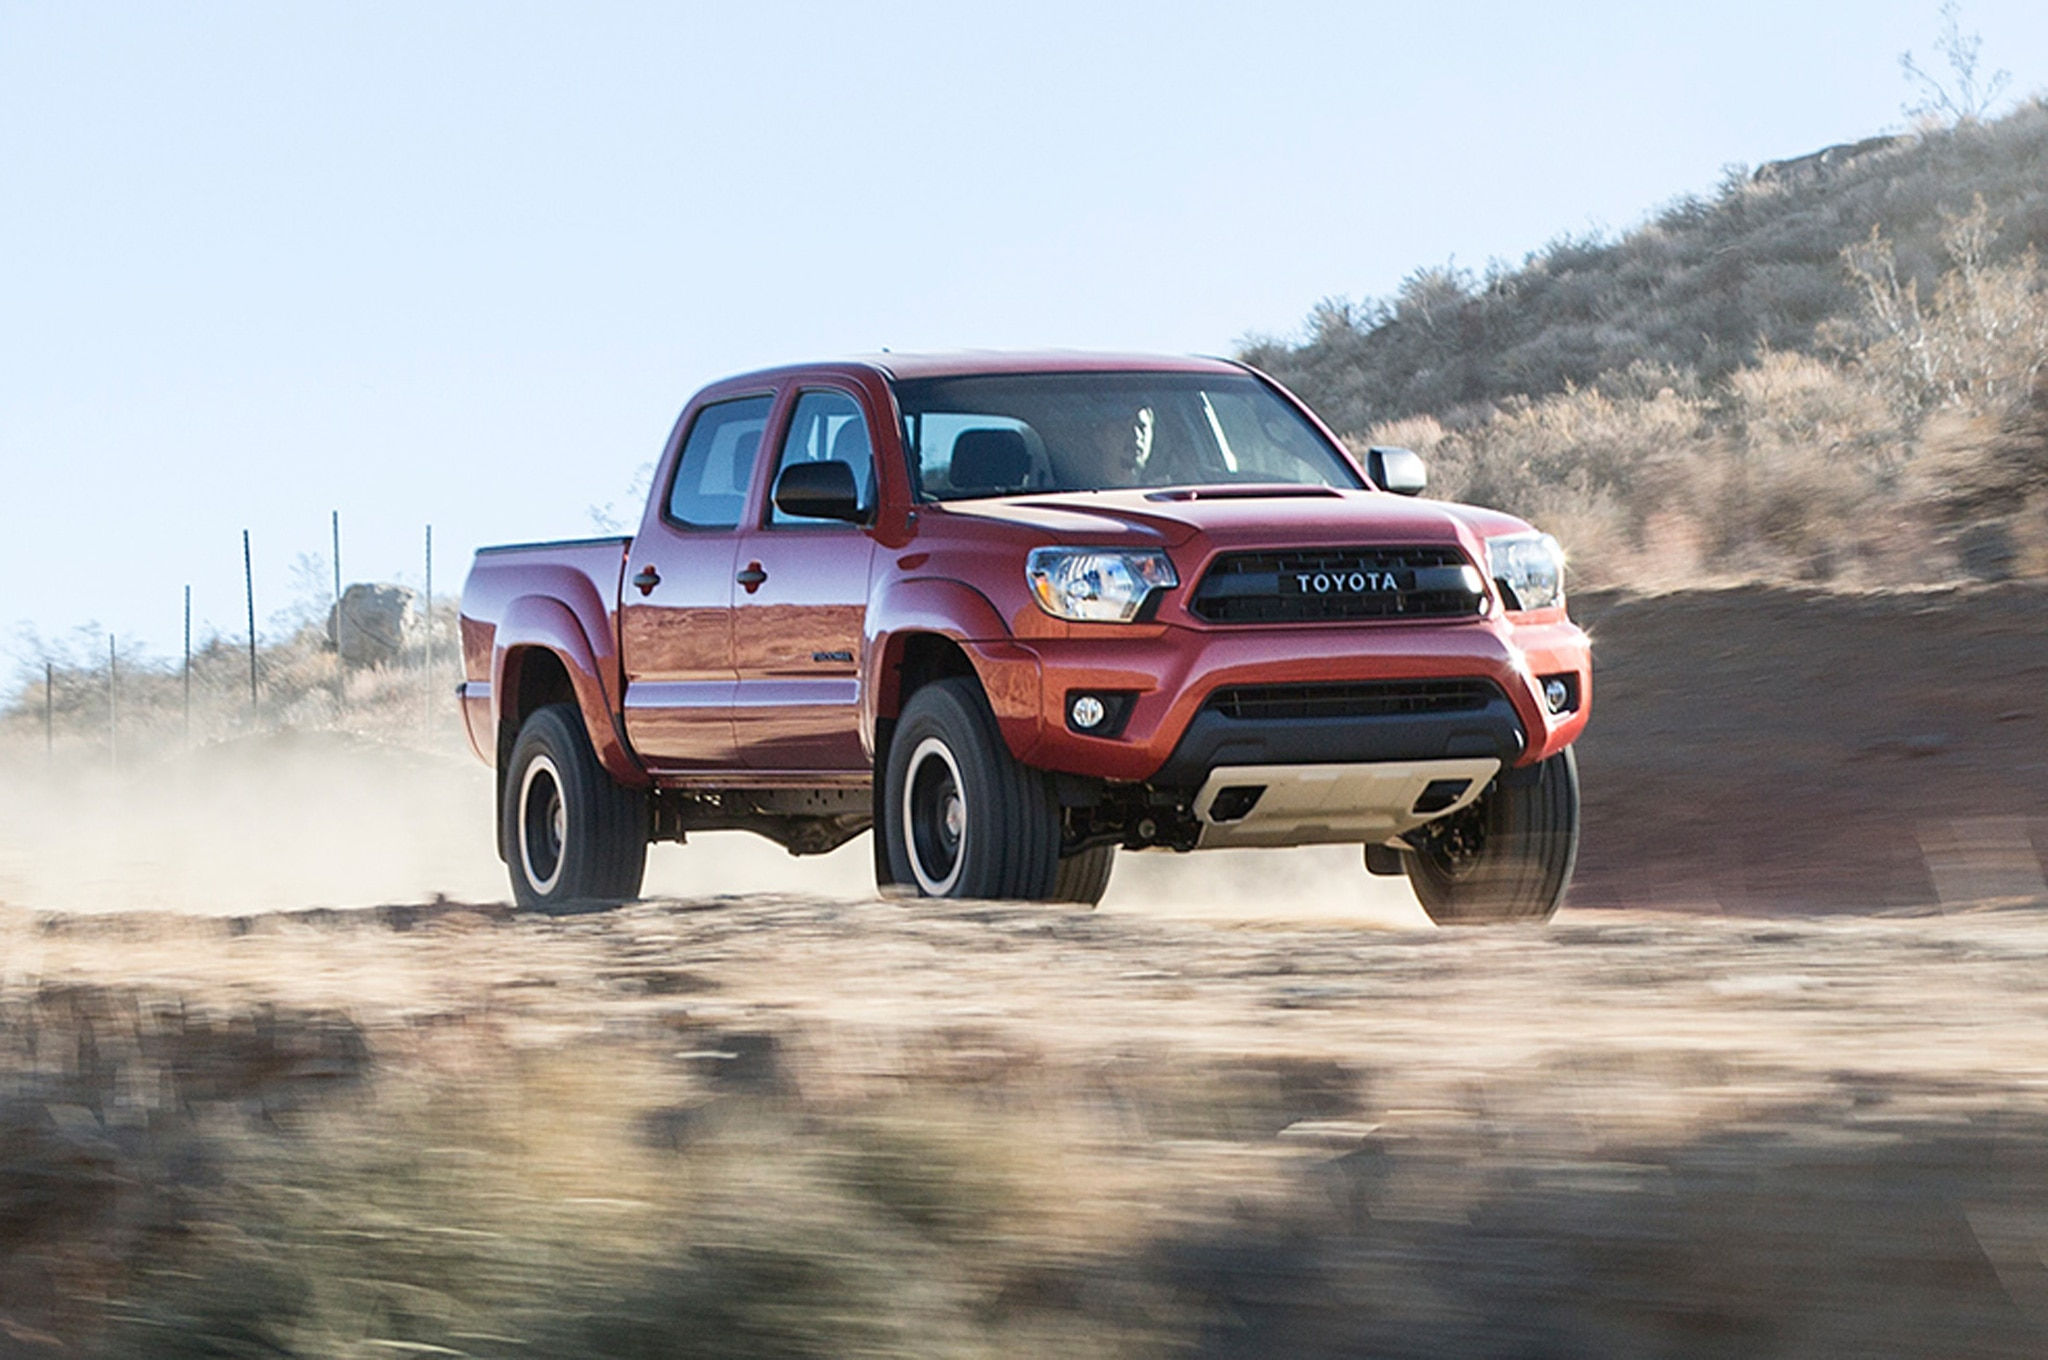 2015 Toyota Tacoma TRD Pro on road